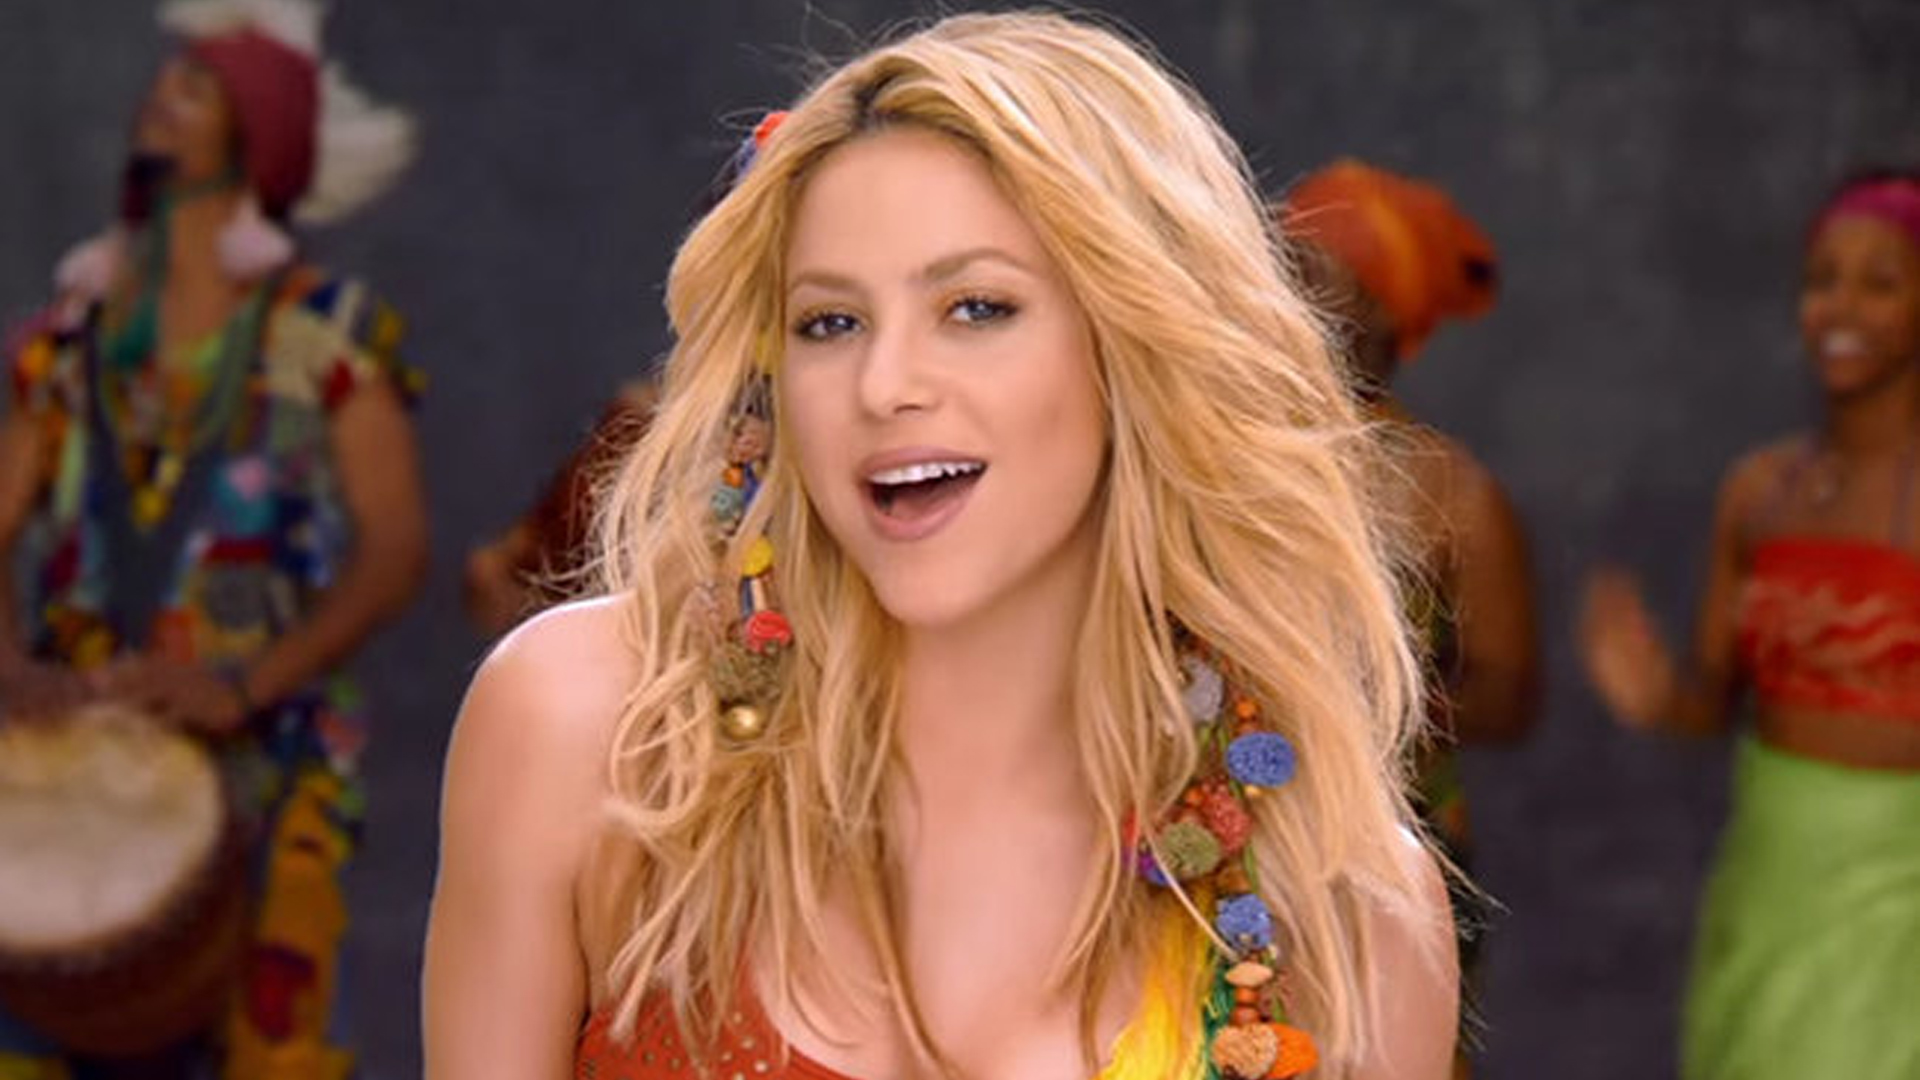 http://www.telemundo.com/sites/nbcutelemundo/files/images/article/cover/2016/01/28/shakira-waka-waka-vid-2010-billboard-650.jpg